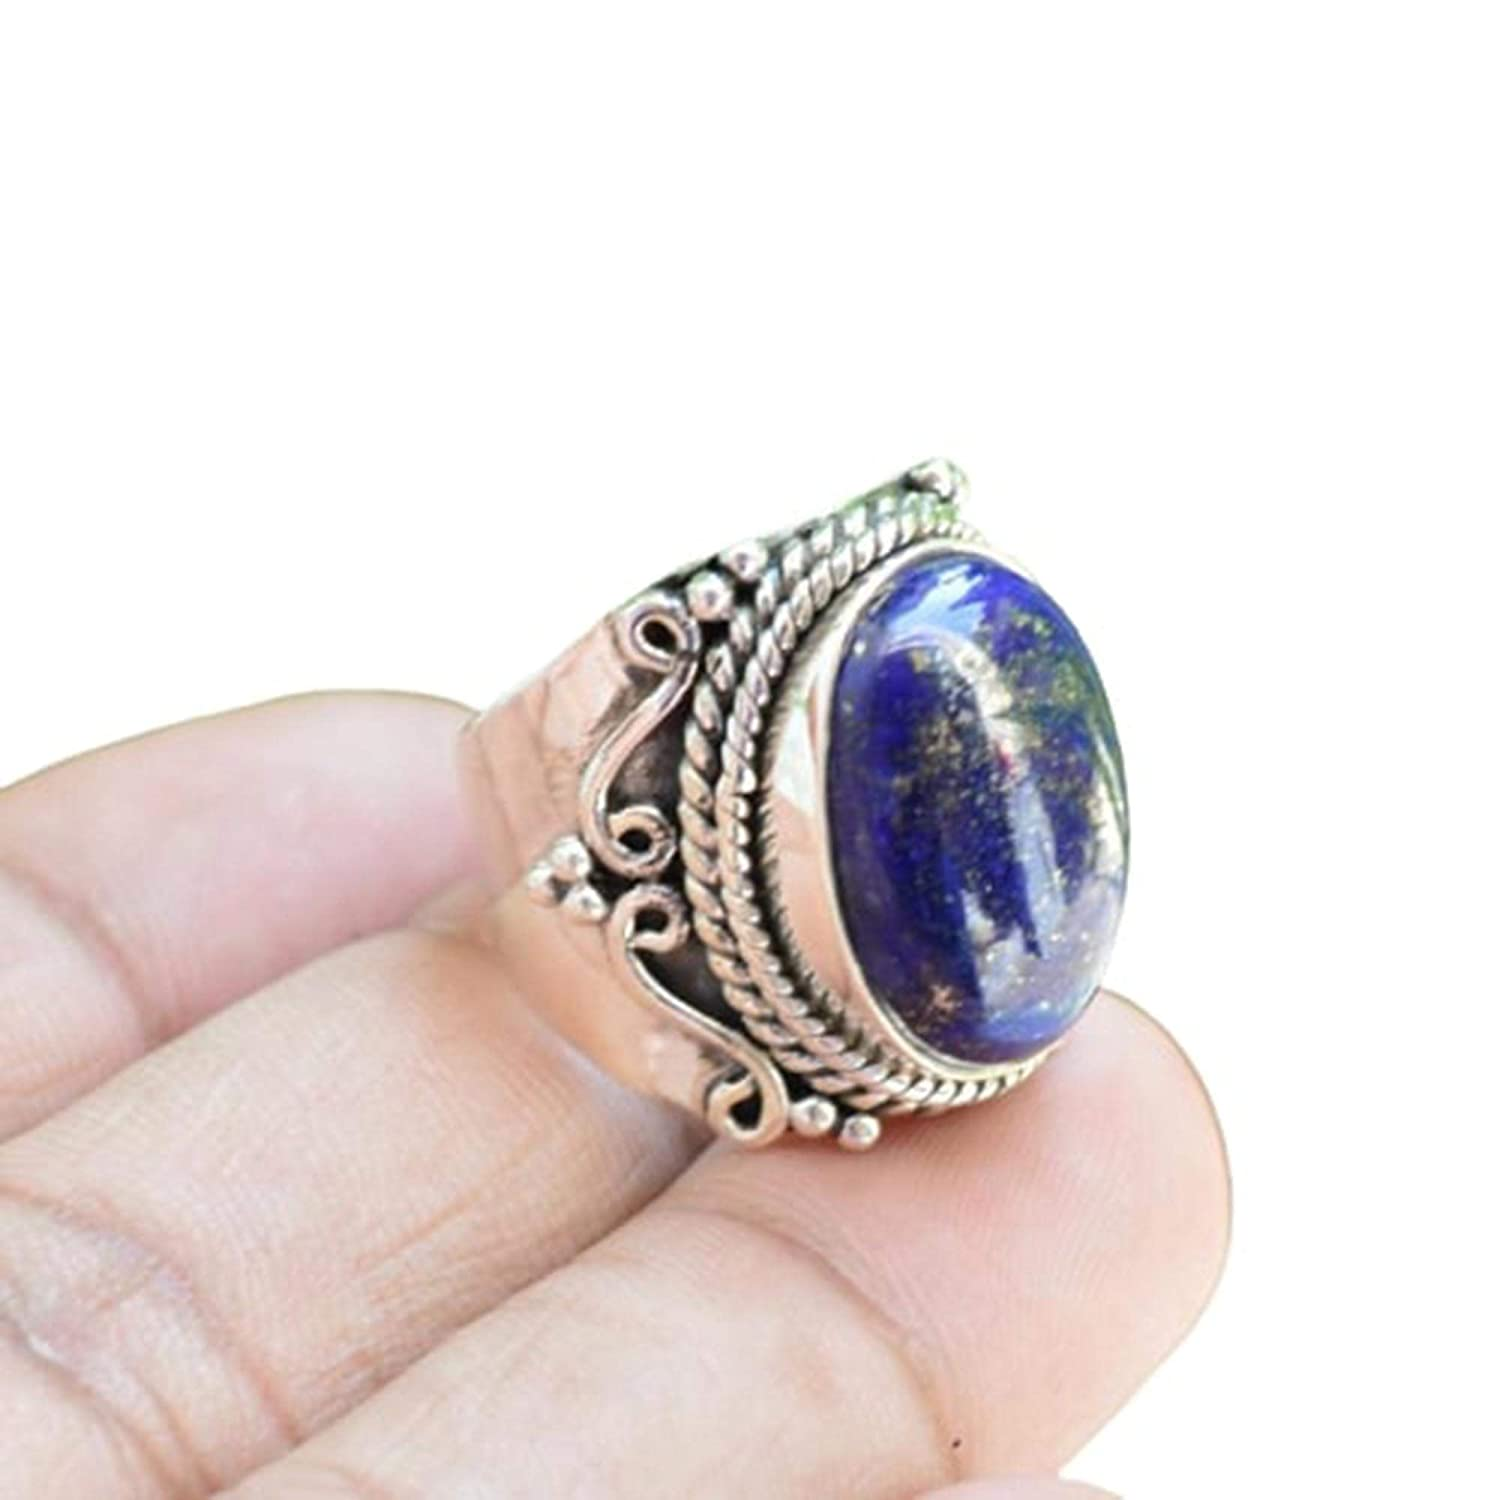 Lapis Lazuli Ring Special Max 56% OFF Campaign Jewelry Afghani Bohemian